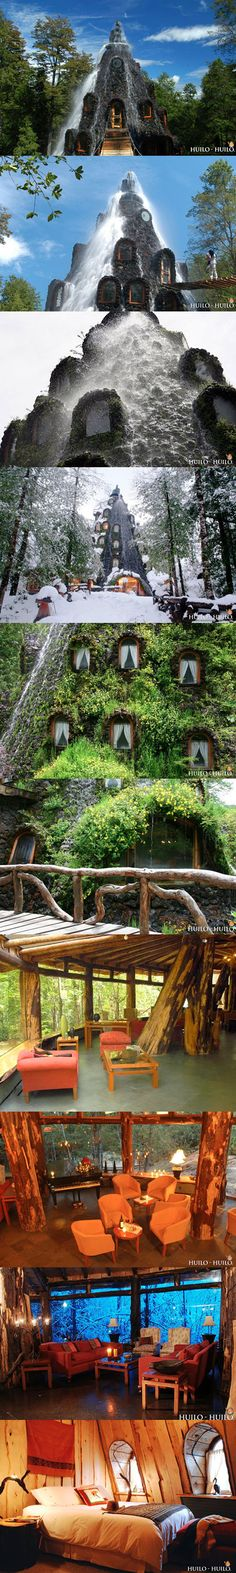 Magic Mountain Hotel inside the Huilo-Huilo Biological Reserve in Chile